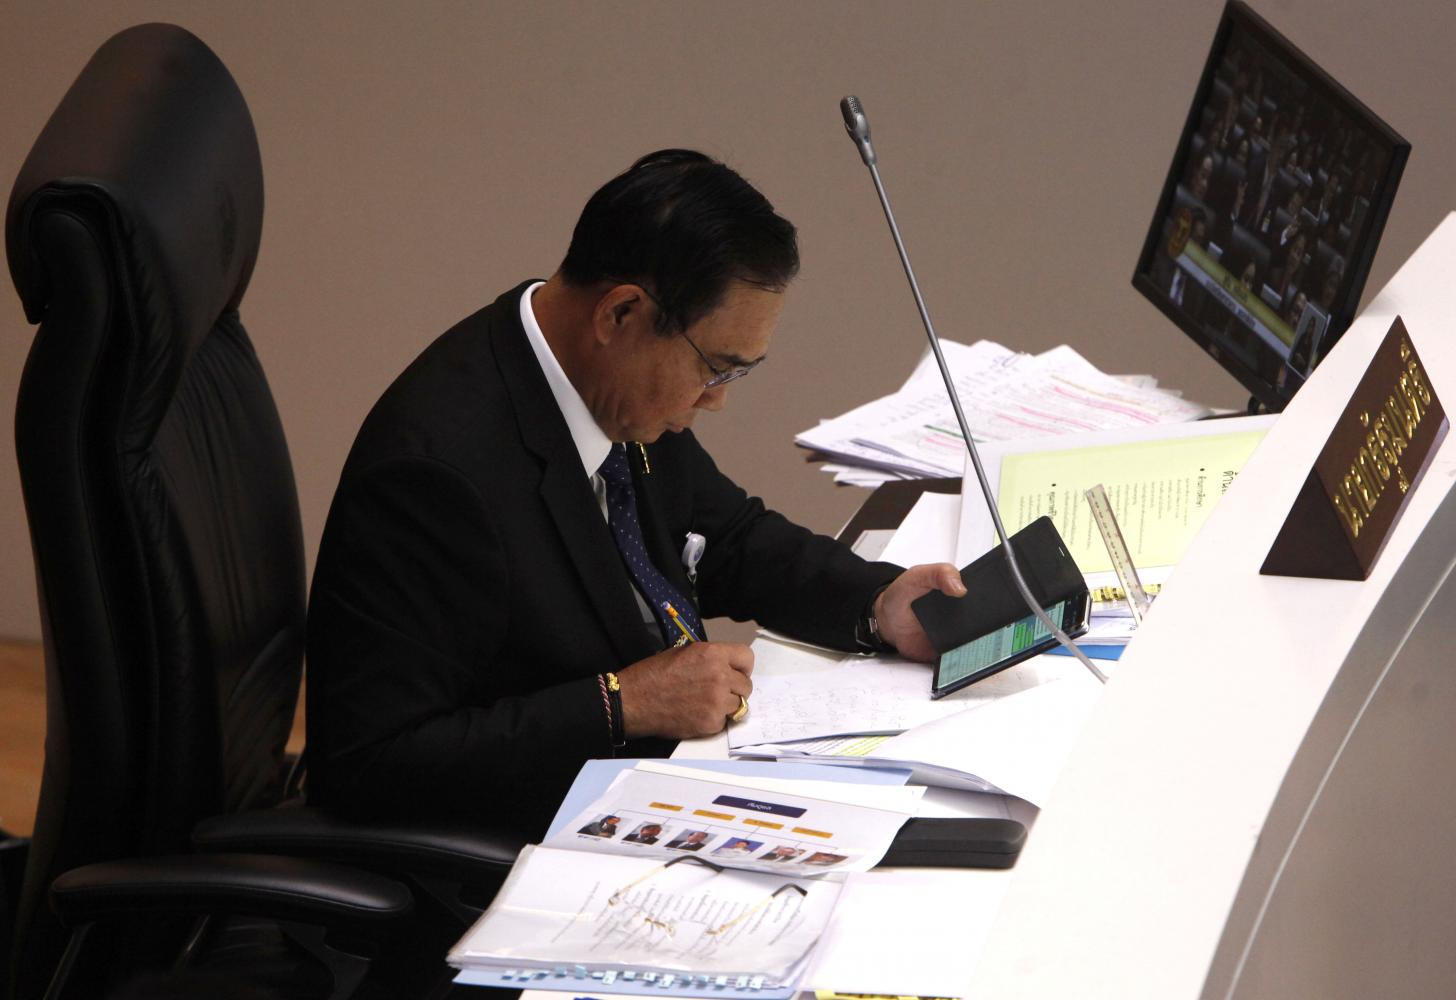 Prime Minister Prayut Chan-o-cha makes notes from his mobile phone in the chamber on the second day of the no-confidence debate on Tuesday.Wichan Charoenkiatpaku